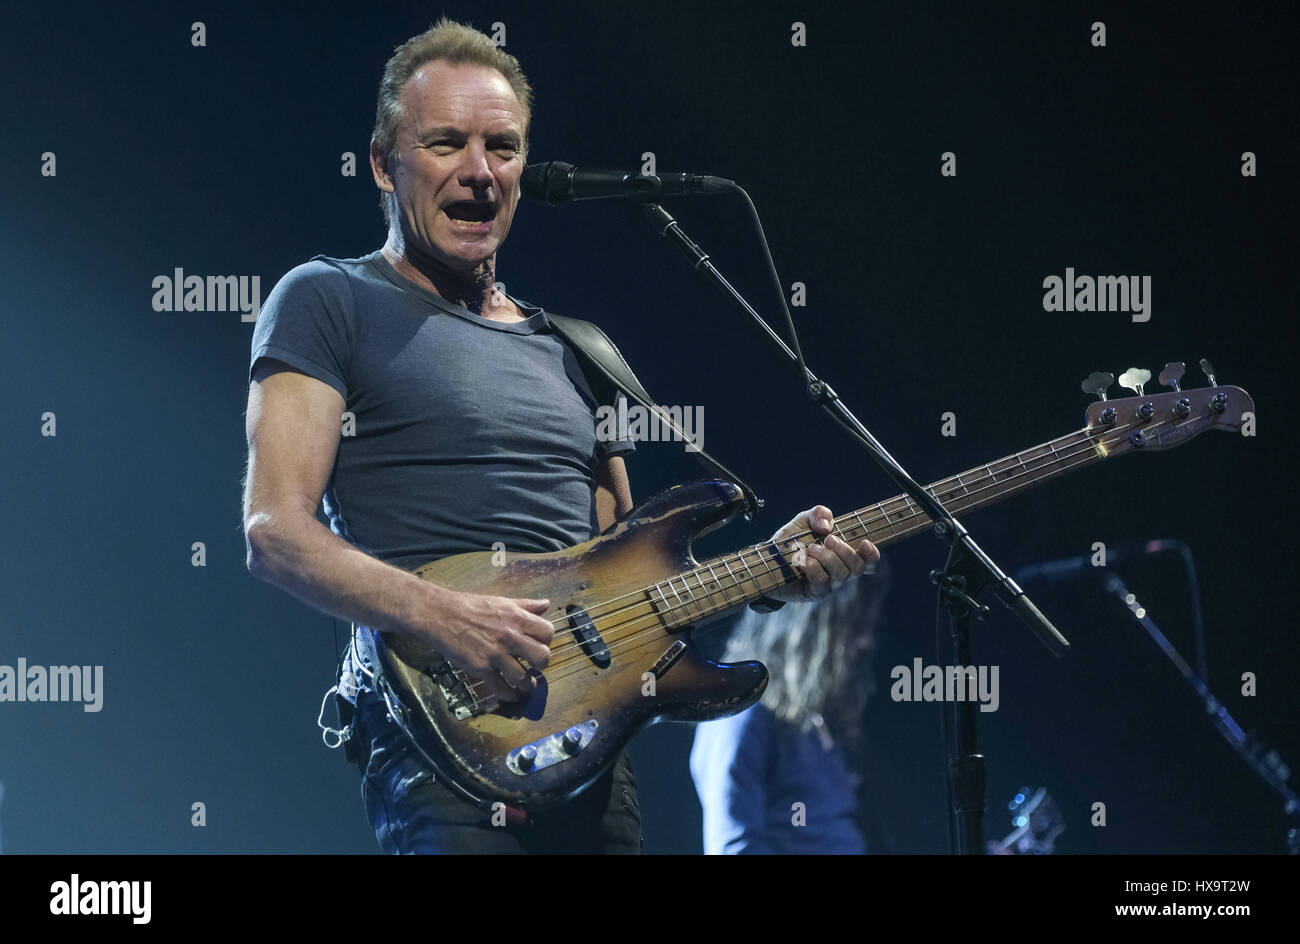 Hamburg, Germany. 25th Mar, 2017. The musician Gordon Sumner, known as Sting, on the stage of the Alsterdorfer Sporthalle - Stock Image